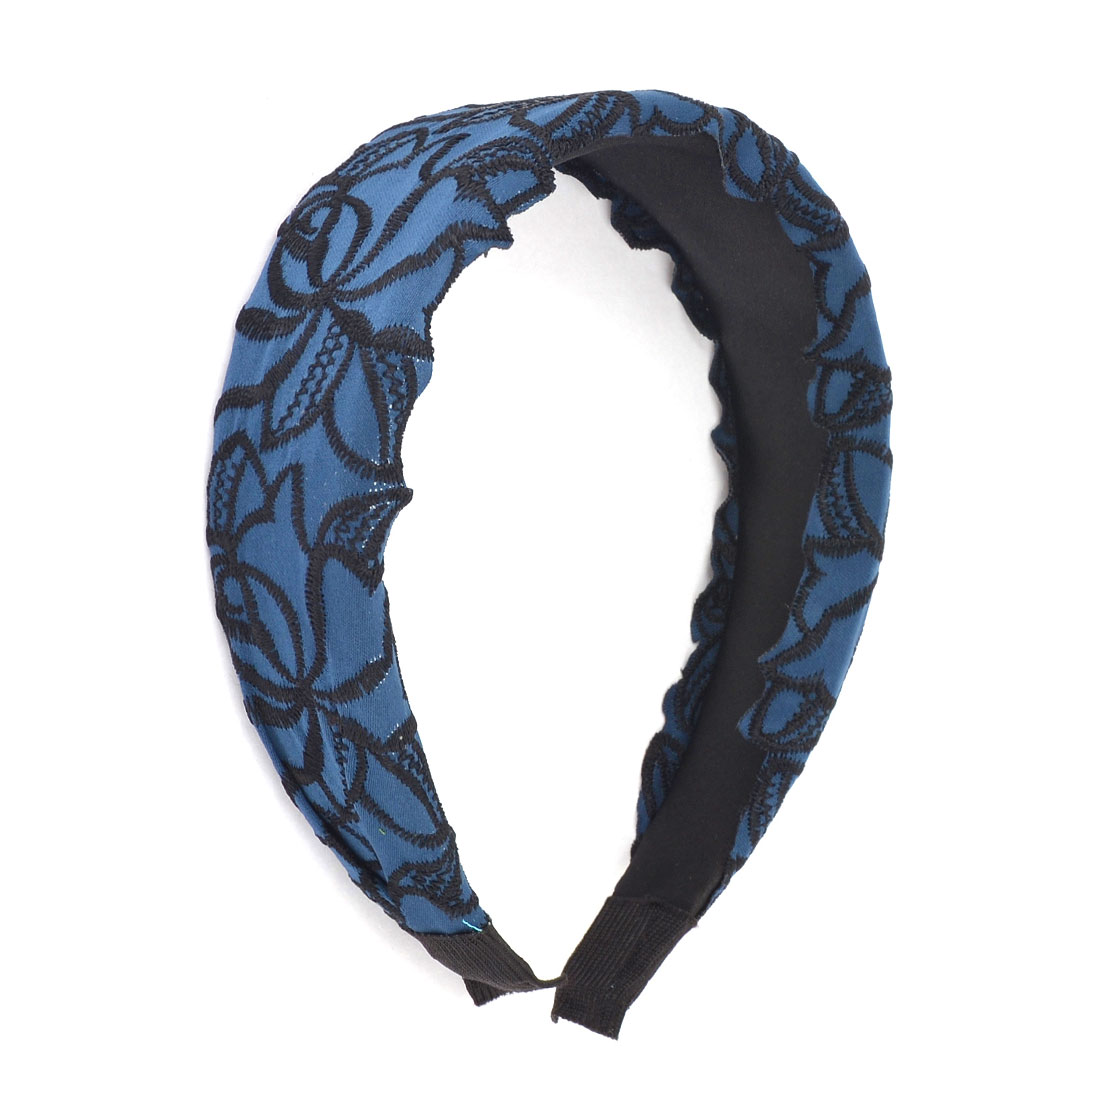 Flower Embroidery Coated Plastic Wide Hair Hoop Band Headband Blue Black for Ladies